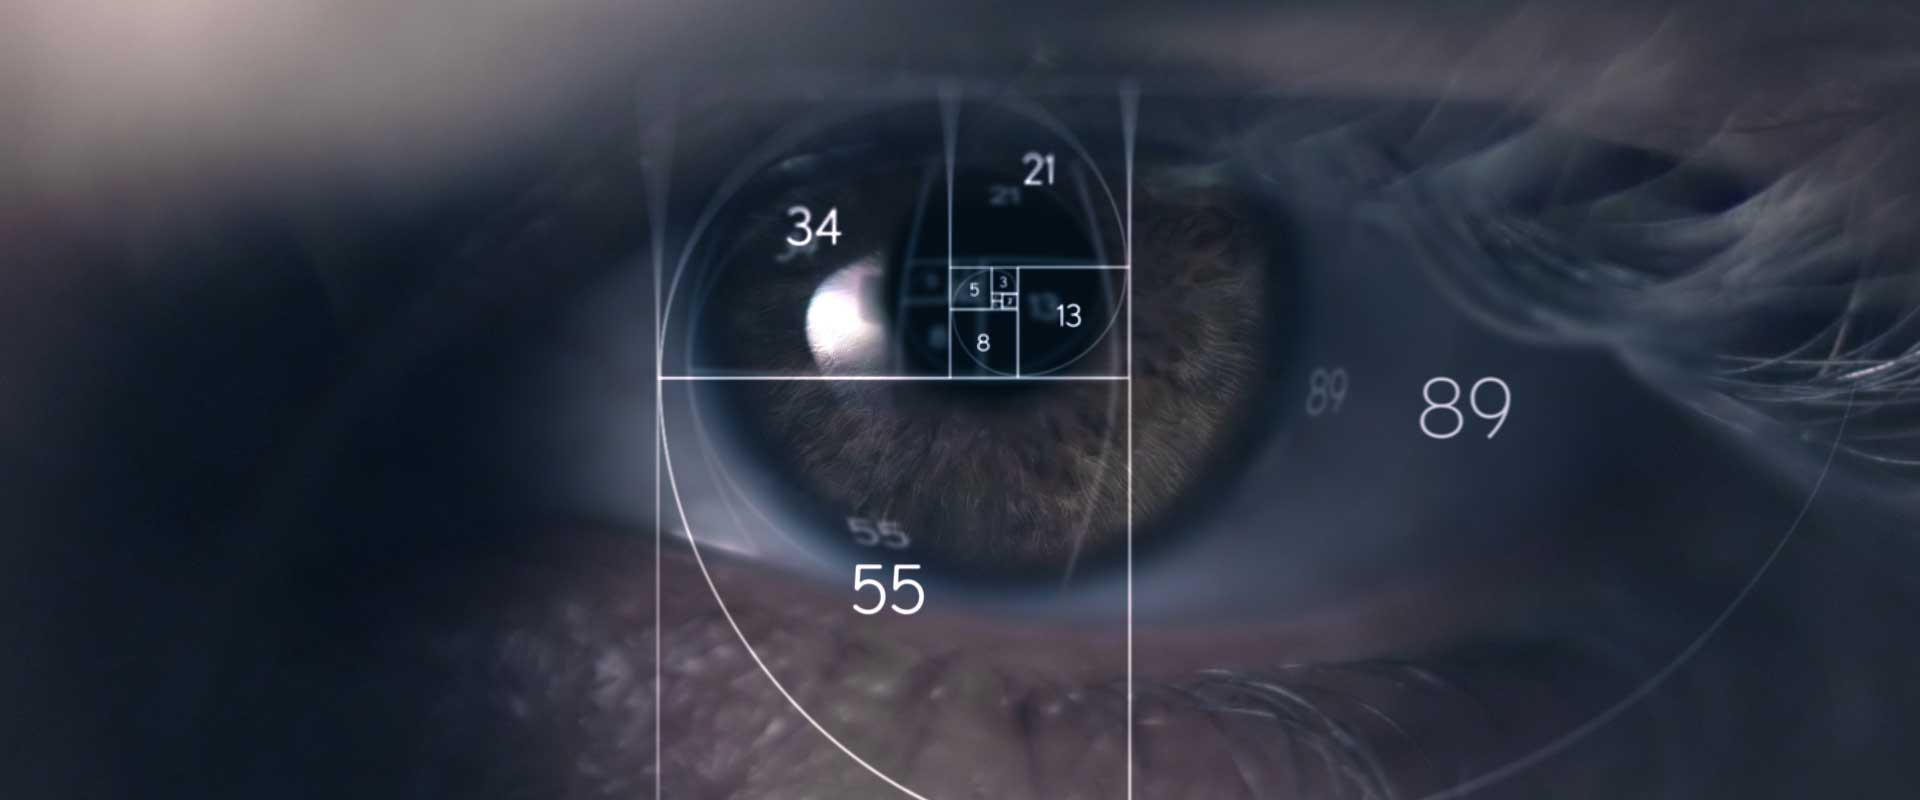 Eye with fonts and lines. Still from Lexus Commercial.